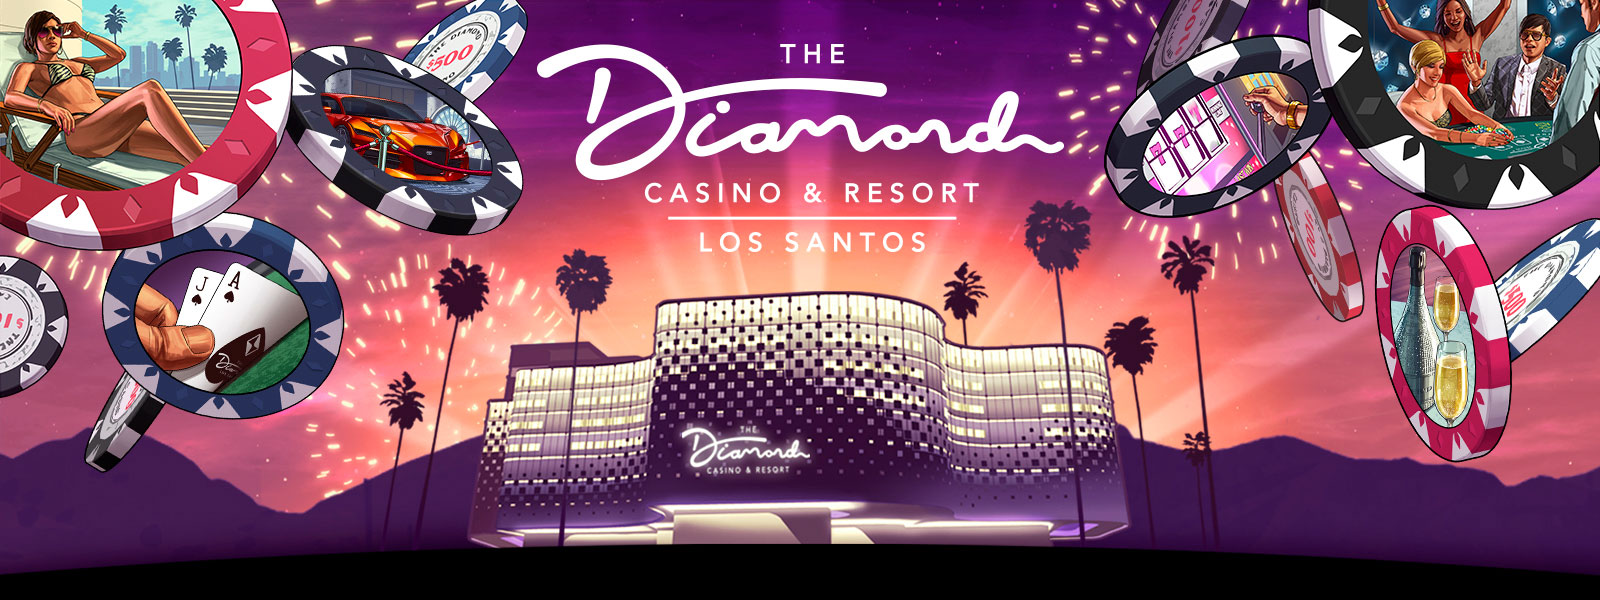 Gta Online Launches The Diamond Casino Resort Should Parents Be Concerned Children Of The Digital Age